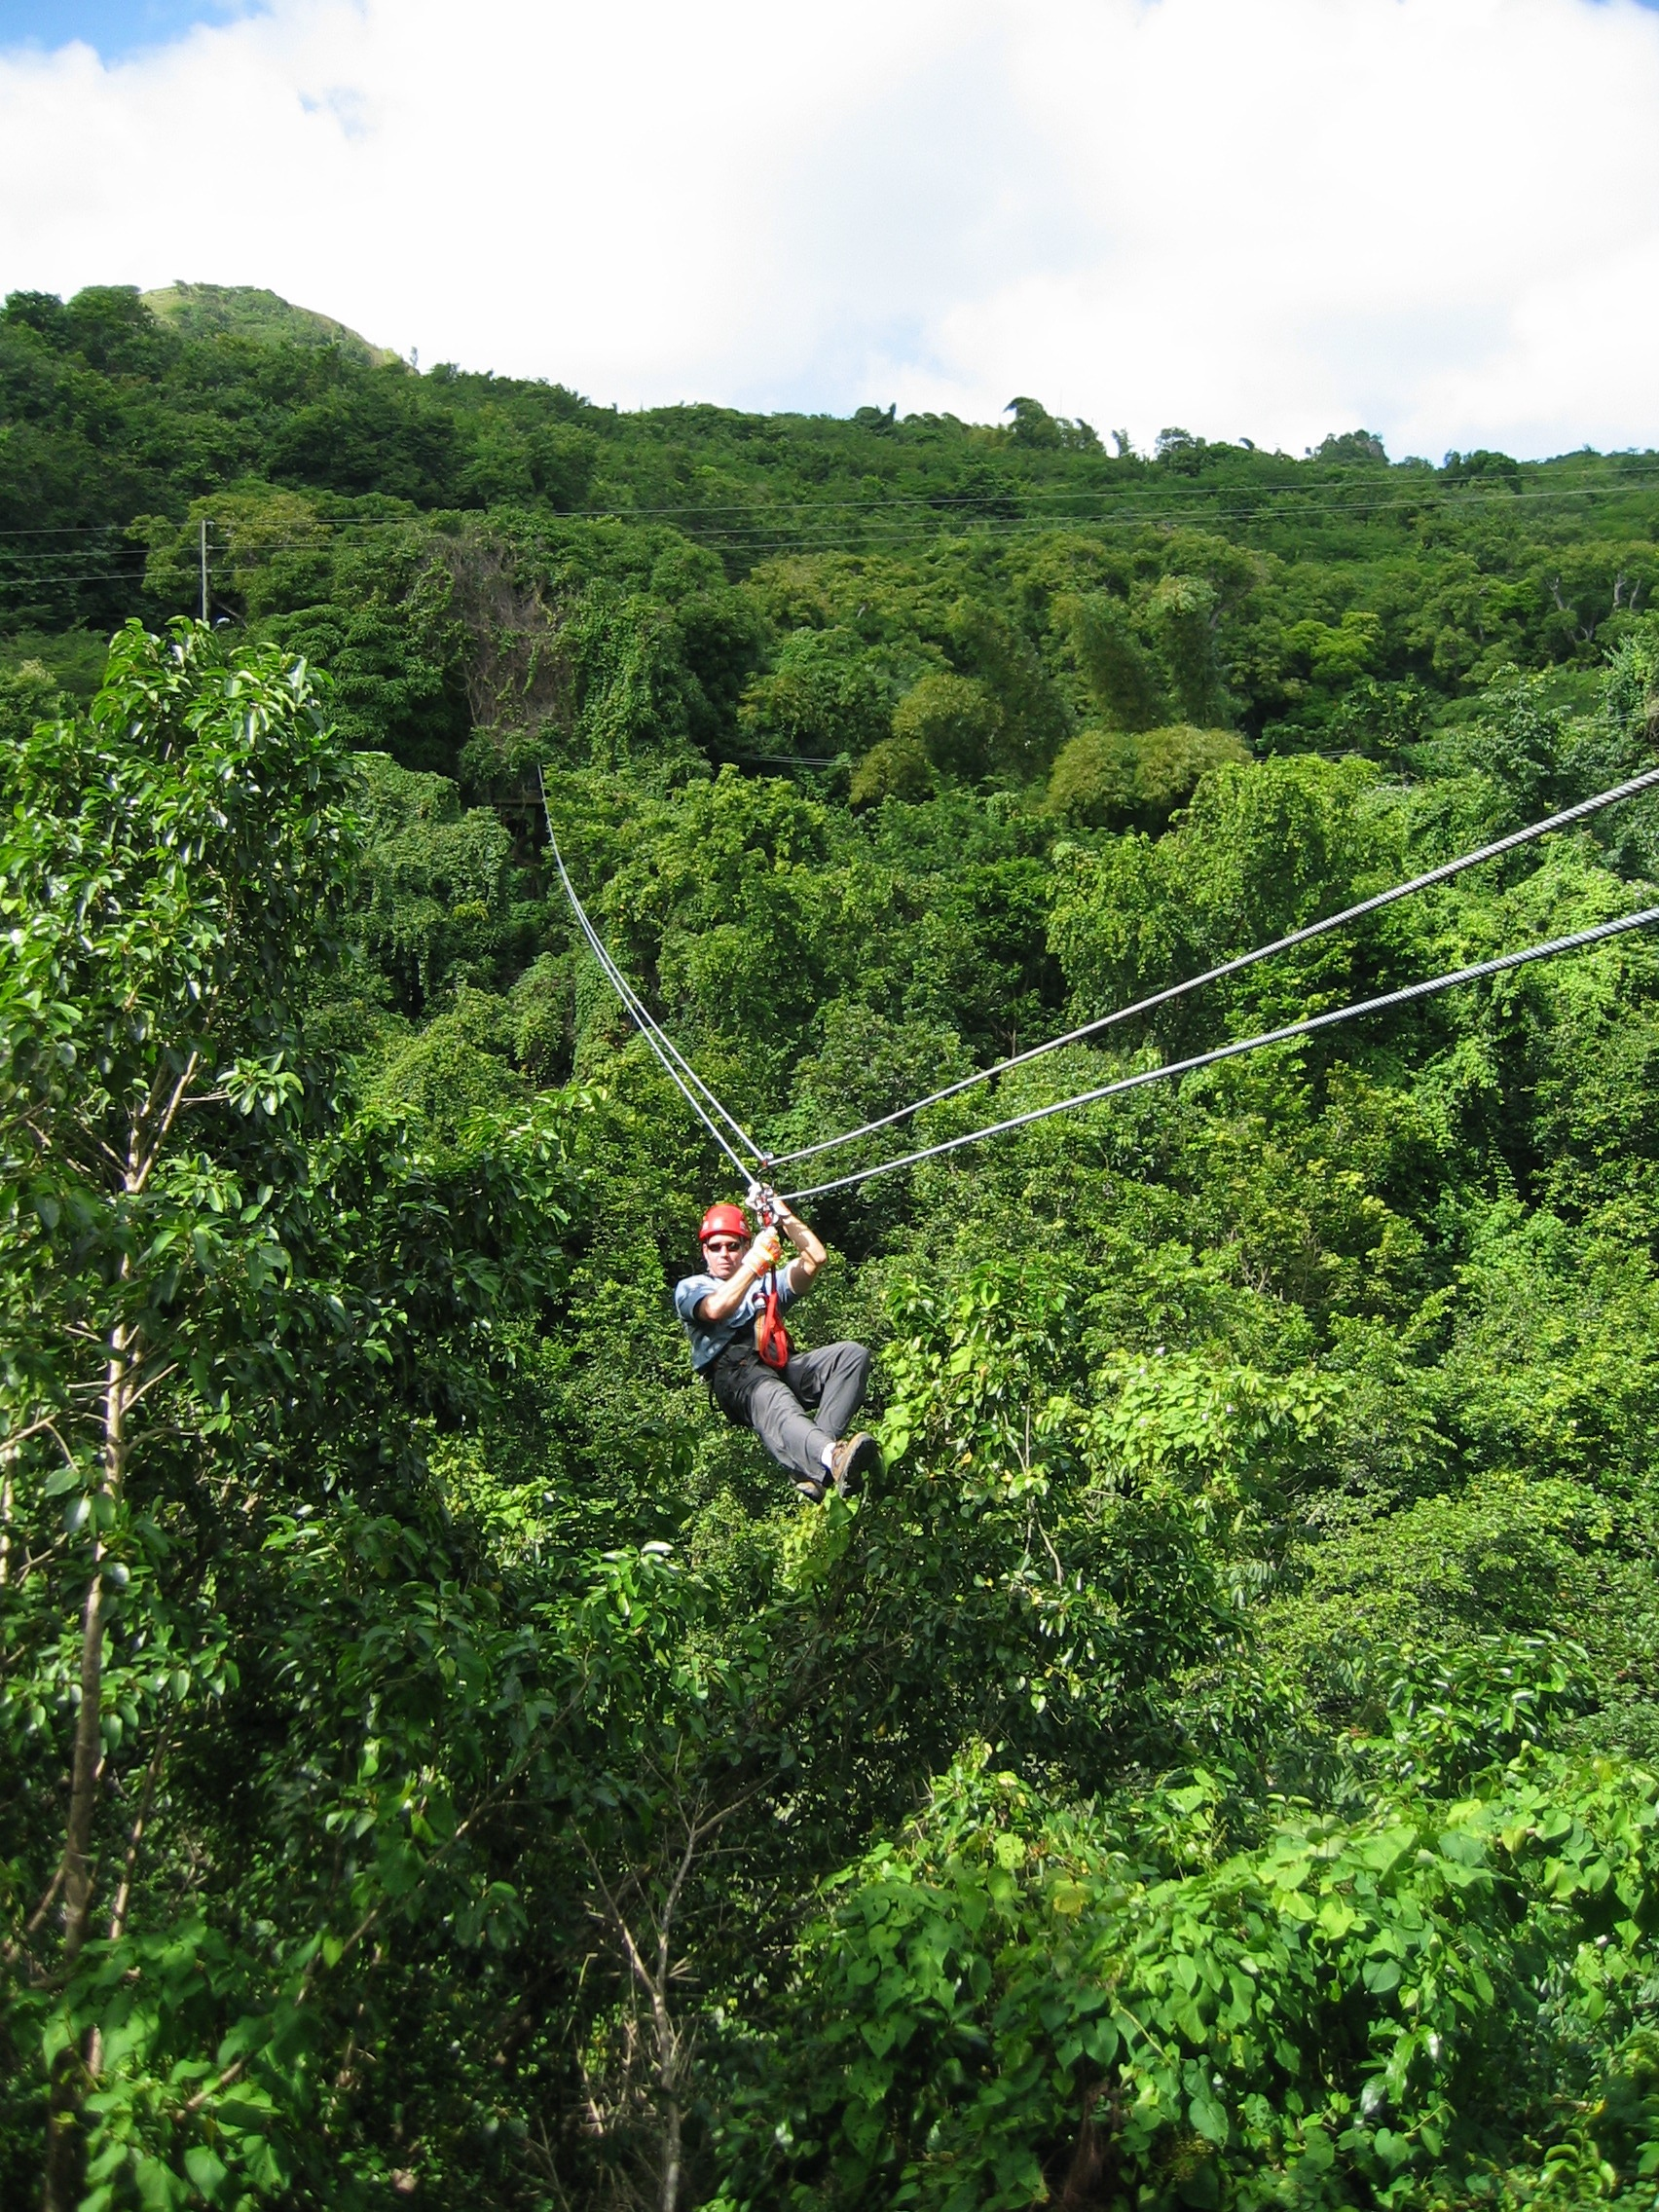 Antiguan Forest Canopy Tour Annual Tree Safety Inspection & Antiguan Forest Canopy Tour Annual Tree Safety Inspection ...